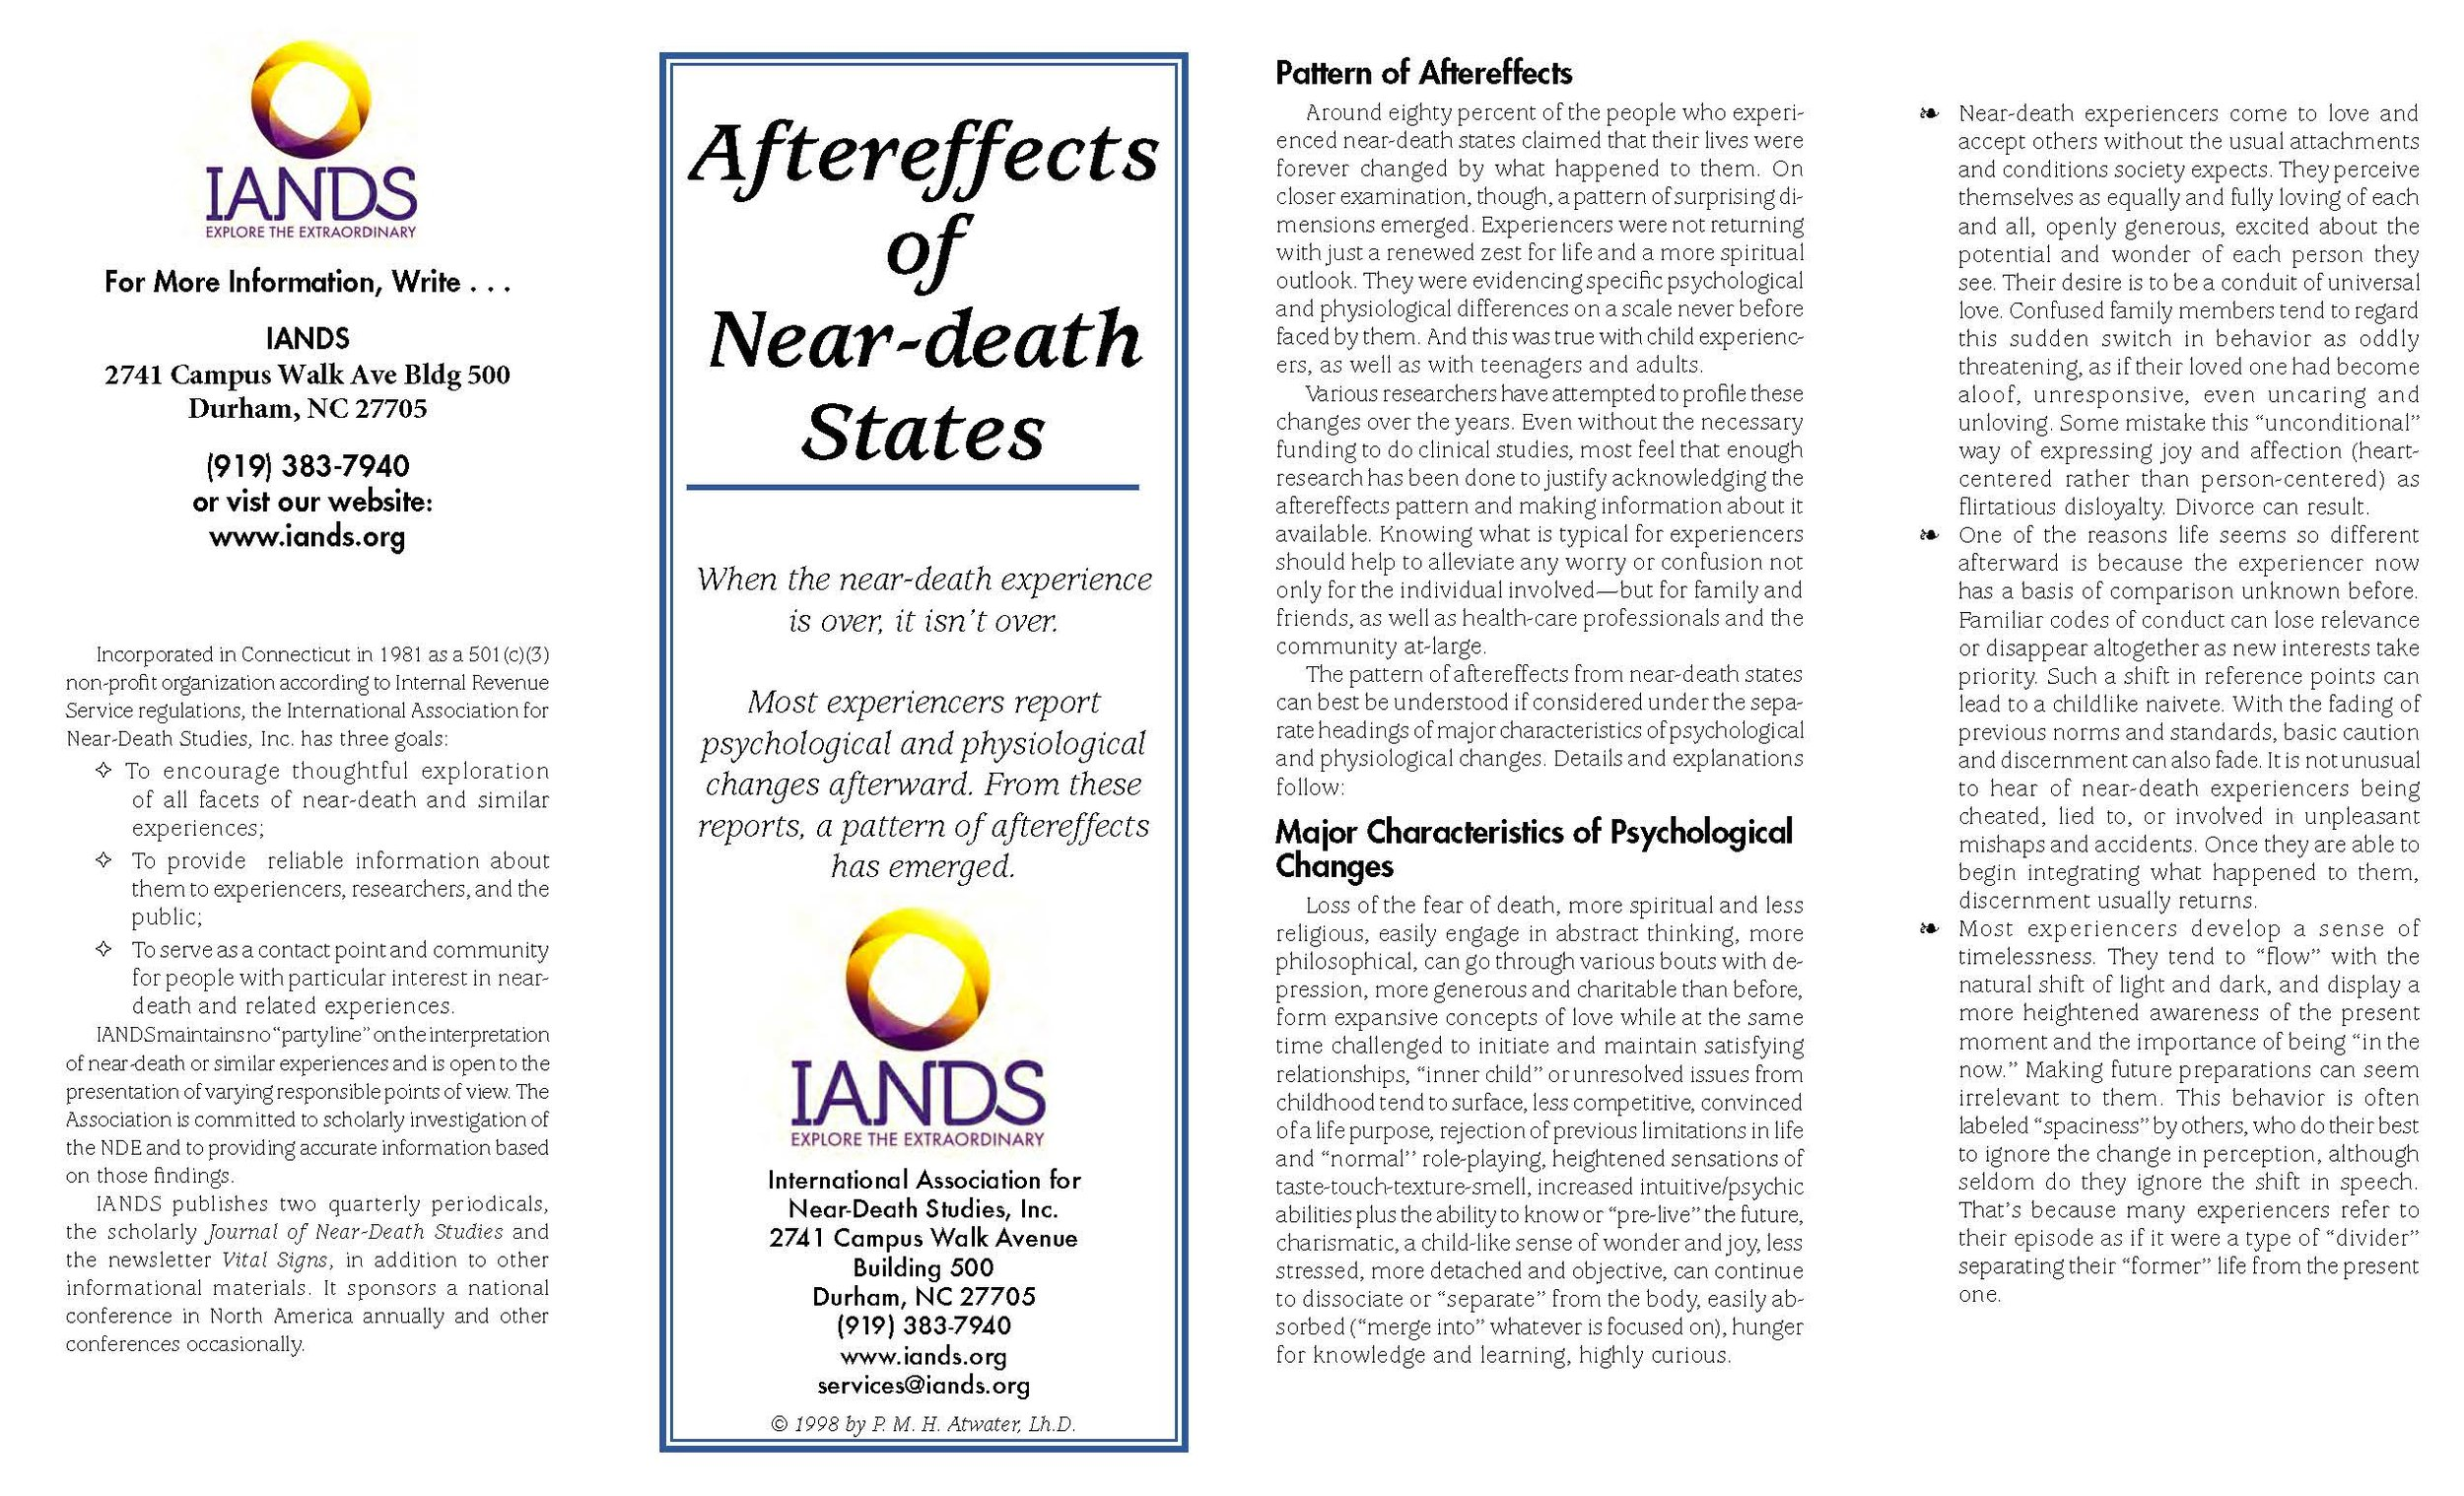 Aftereffects of Near-Death States-1.jpg